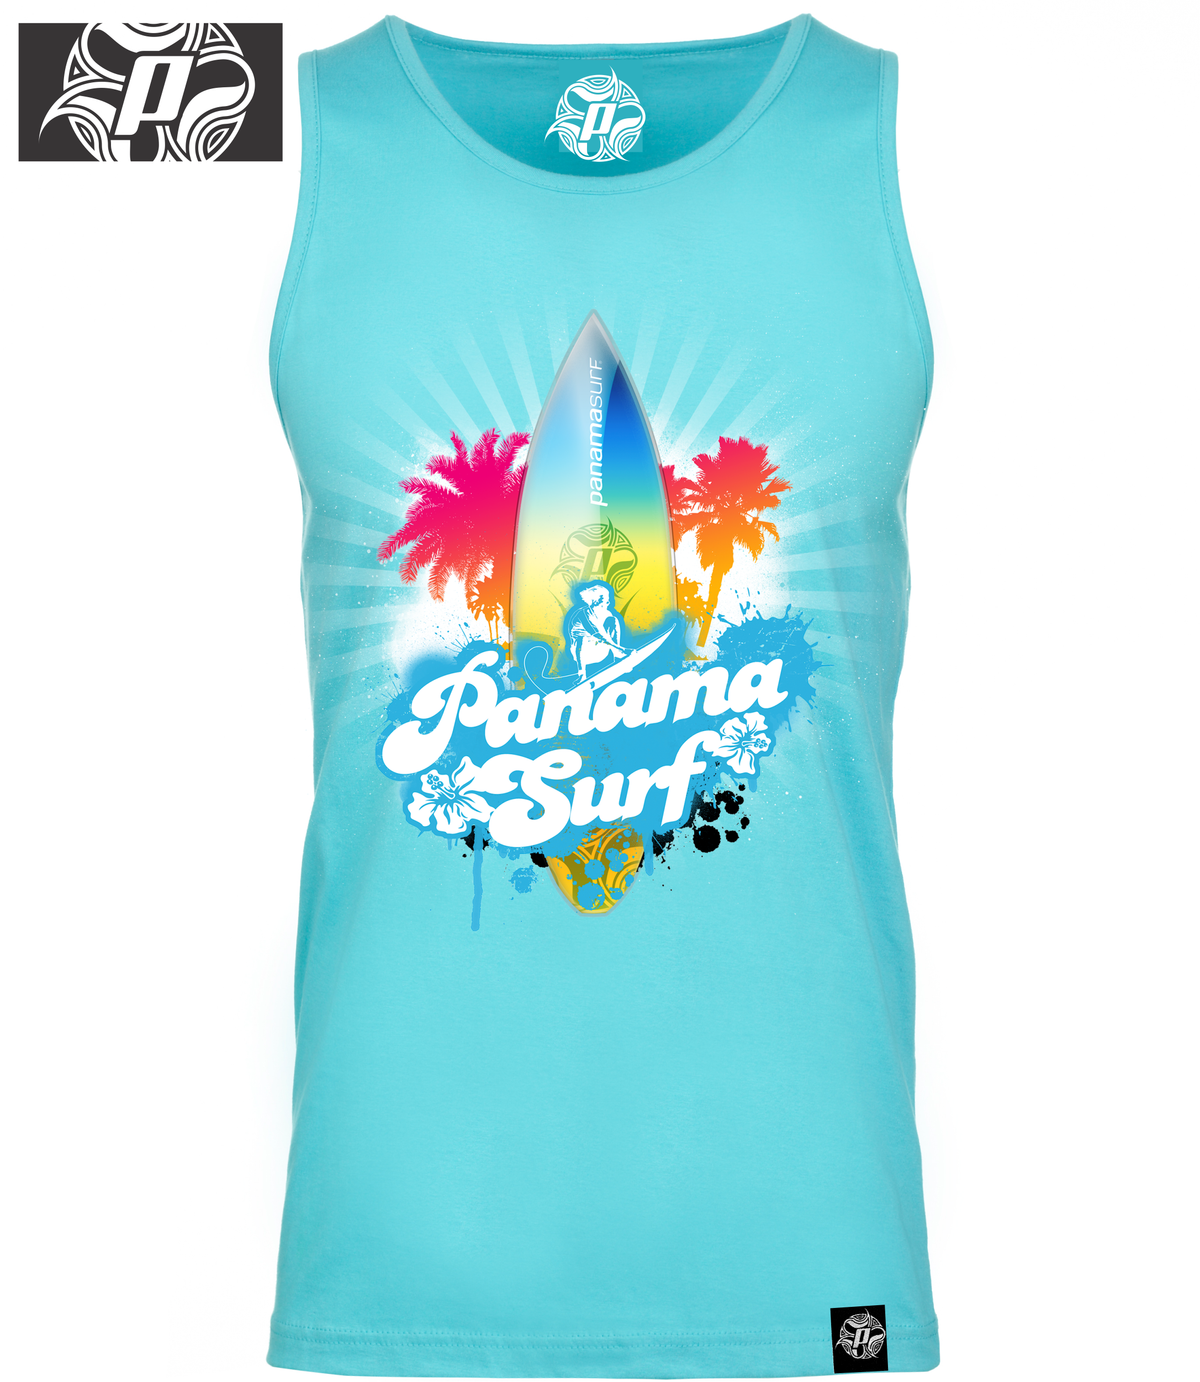 Super-soft jersey tank 100% combed cotton jersey in tahiti blue with the Palm Explosion graphics - Panama Surf